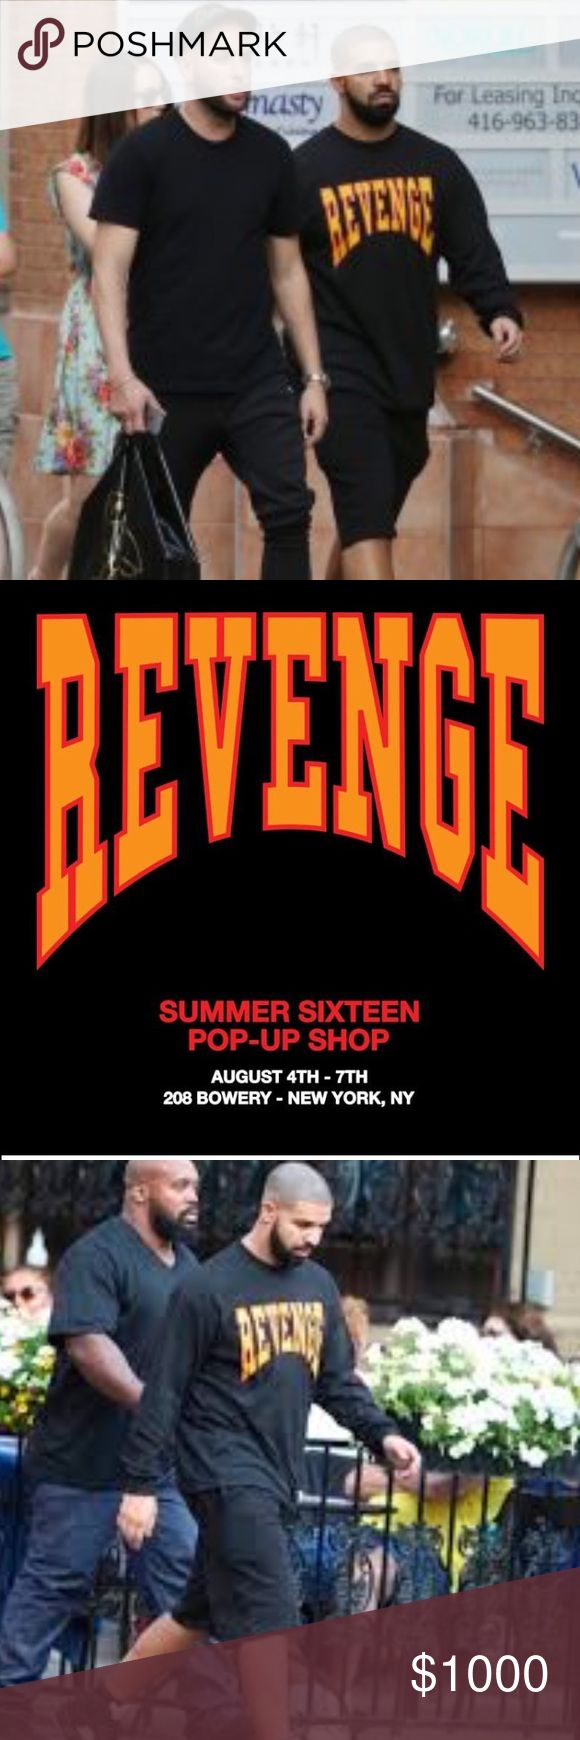 """Drake Pop-Up Revenge Summer 16 Long Sleeve Shirt ! This shirt is from the Drake NYC pop-up in Bowery NYC. Stood in line for 2 hours for this shirt and it's not sold in stores. Brand new and never worn. You will see the shirt featured in Drake's video """"Child's Play"""". It is authentic and from the Revenge/Summer 16 popup store. Says """"looking for revenge on the left wrist"""" Same shirt that Drake is wearing in the photos. Make me an offer!!! ✌🏾️🔥🔥🔥💯 Drake Summer 16 Tops Tees - Long Sleeve"""